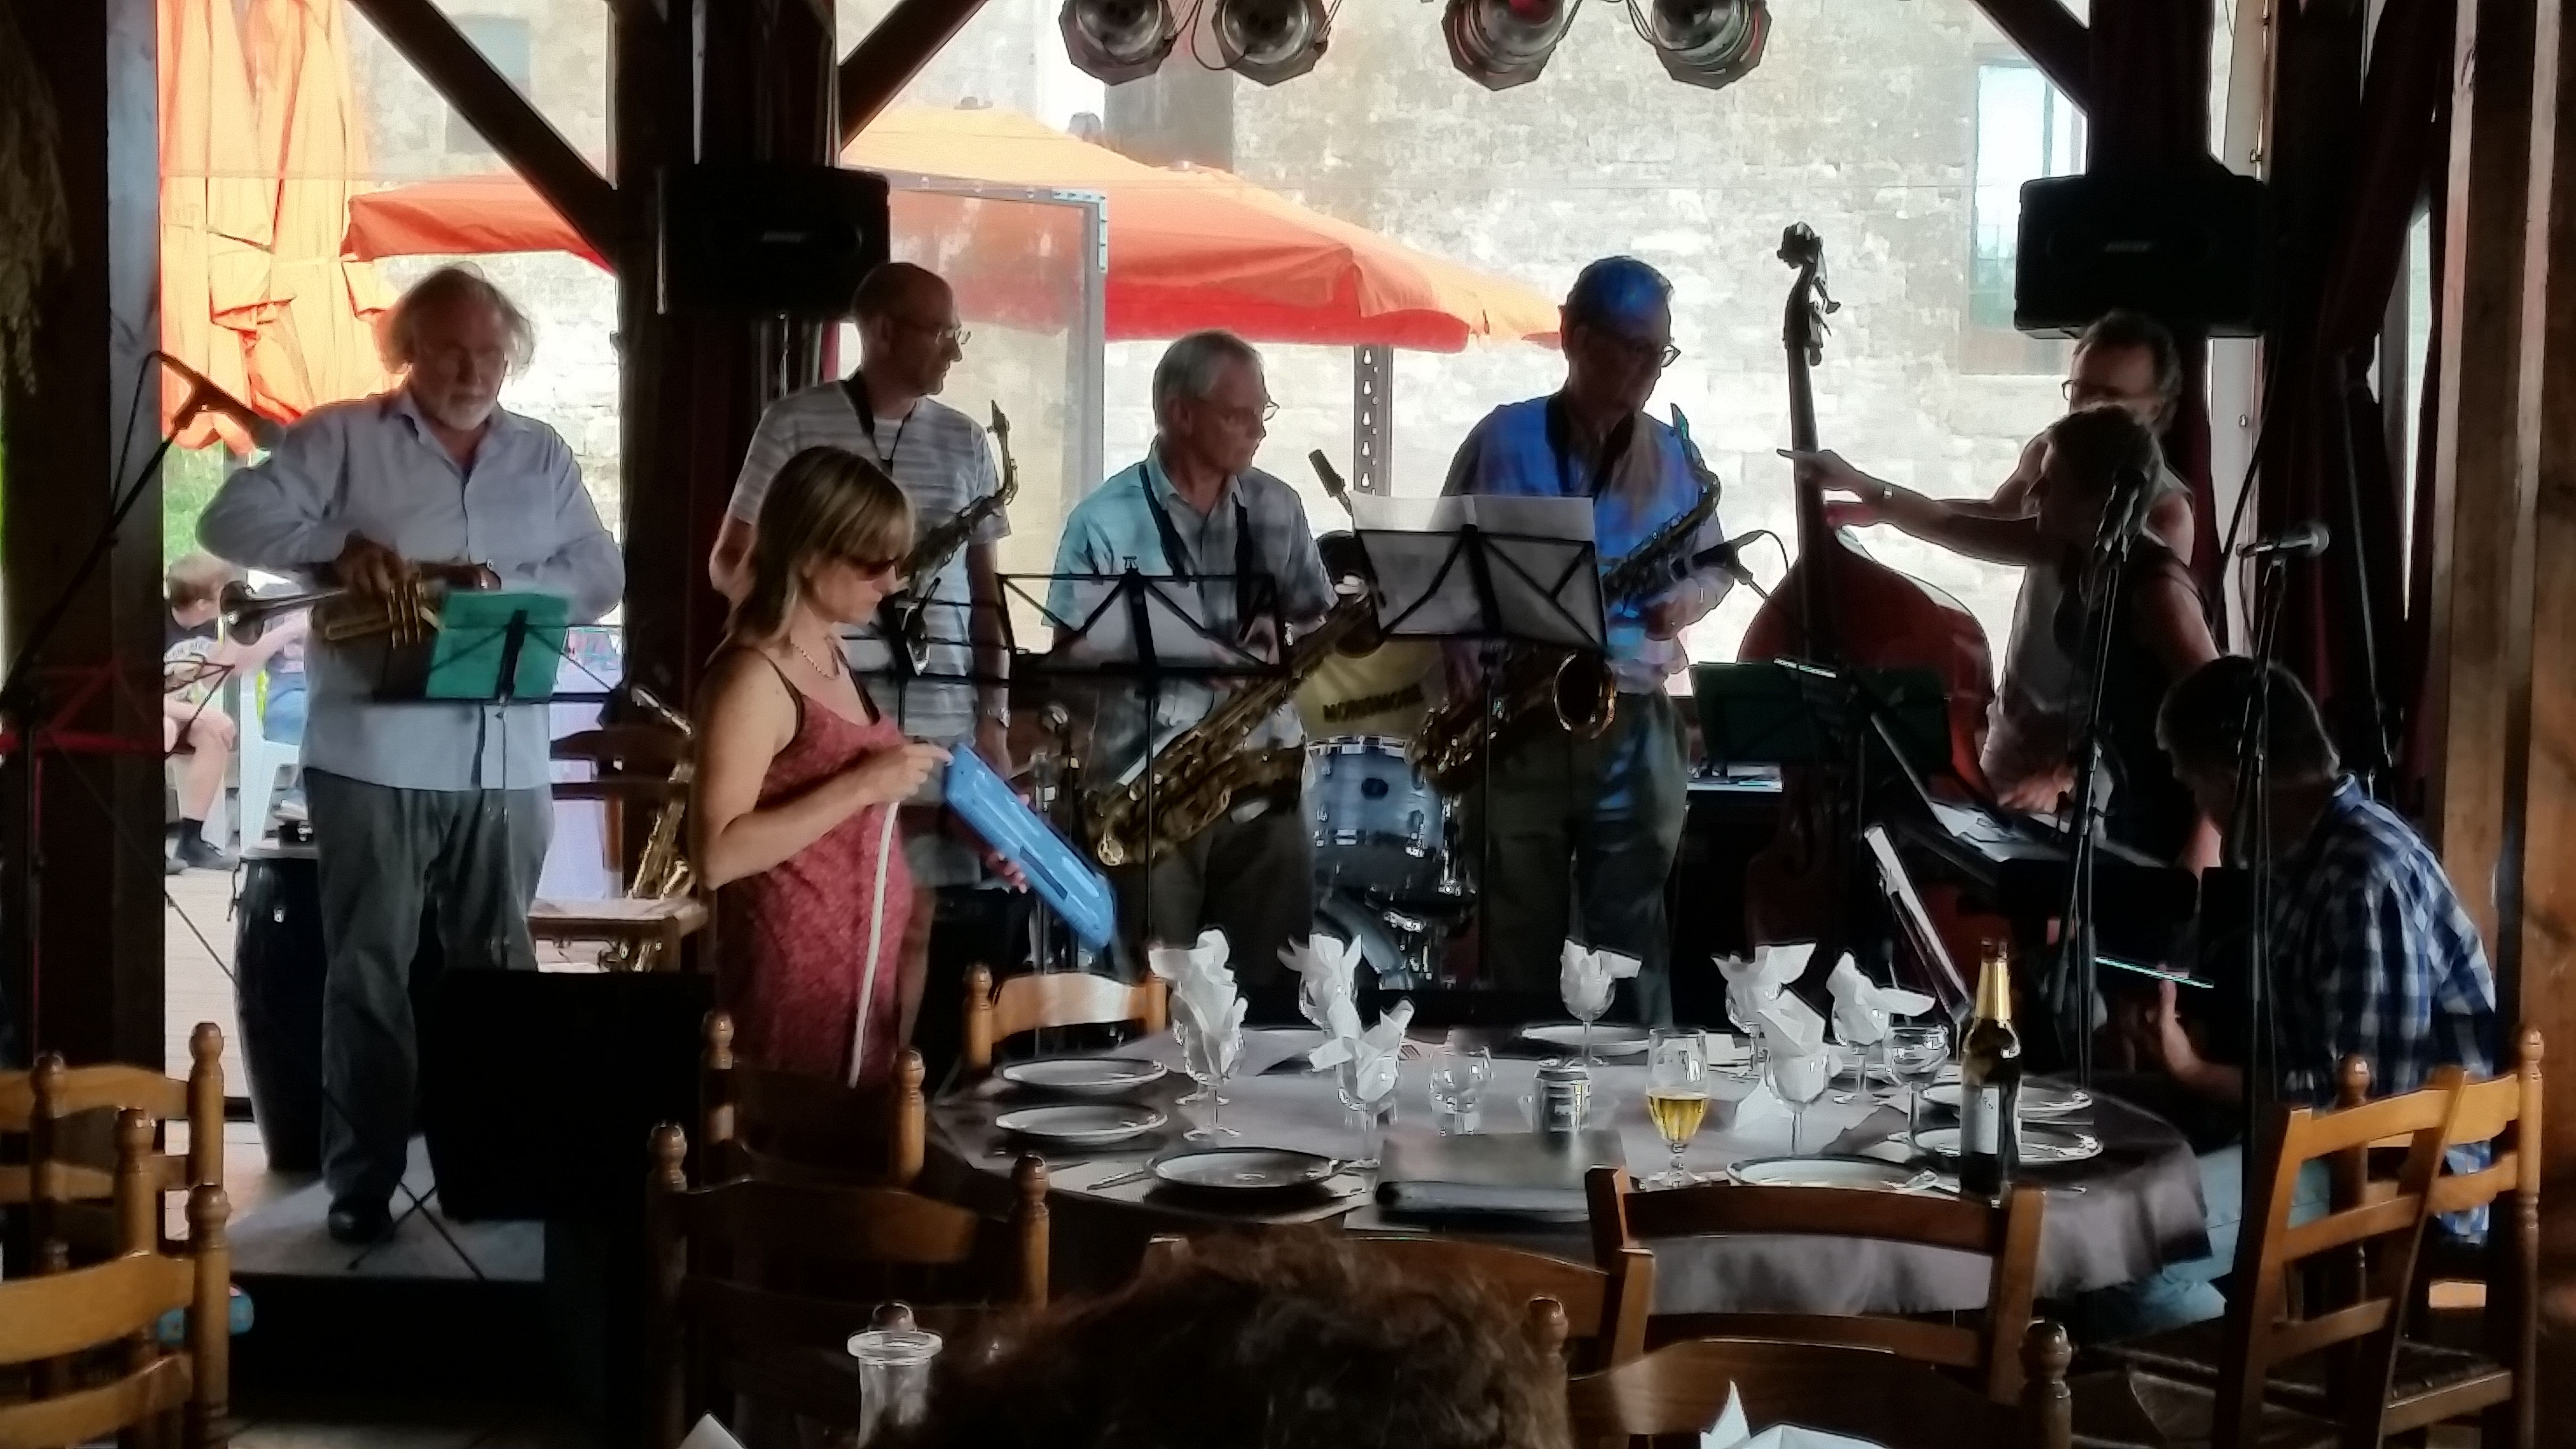 Study the art of jazz music in the stunning setting of a mediaeval Chateau deep in rural  France. Learn #Jazz #Swing #Blues #Funk #Soul #BeBop #Singing @Dordogne Jazz Summer School July 25 - Aug 8 @ #ChateaudeMonteton SWFrance http://www.jazzschool-dordogne.co.uk